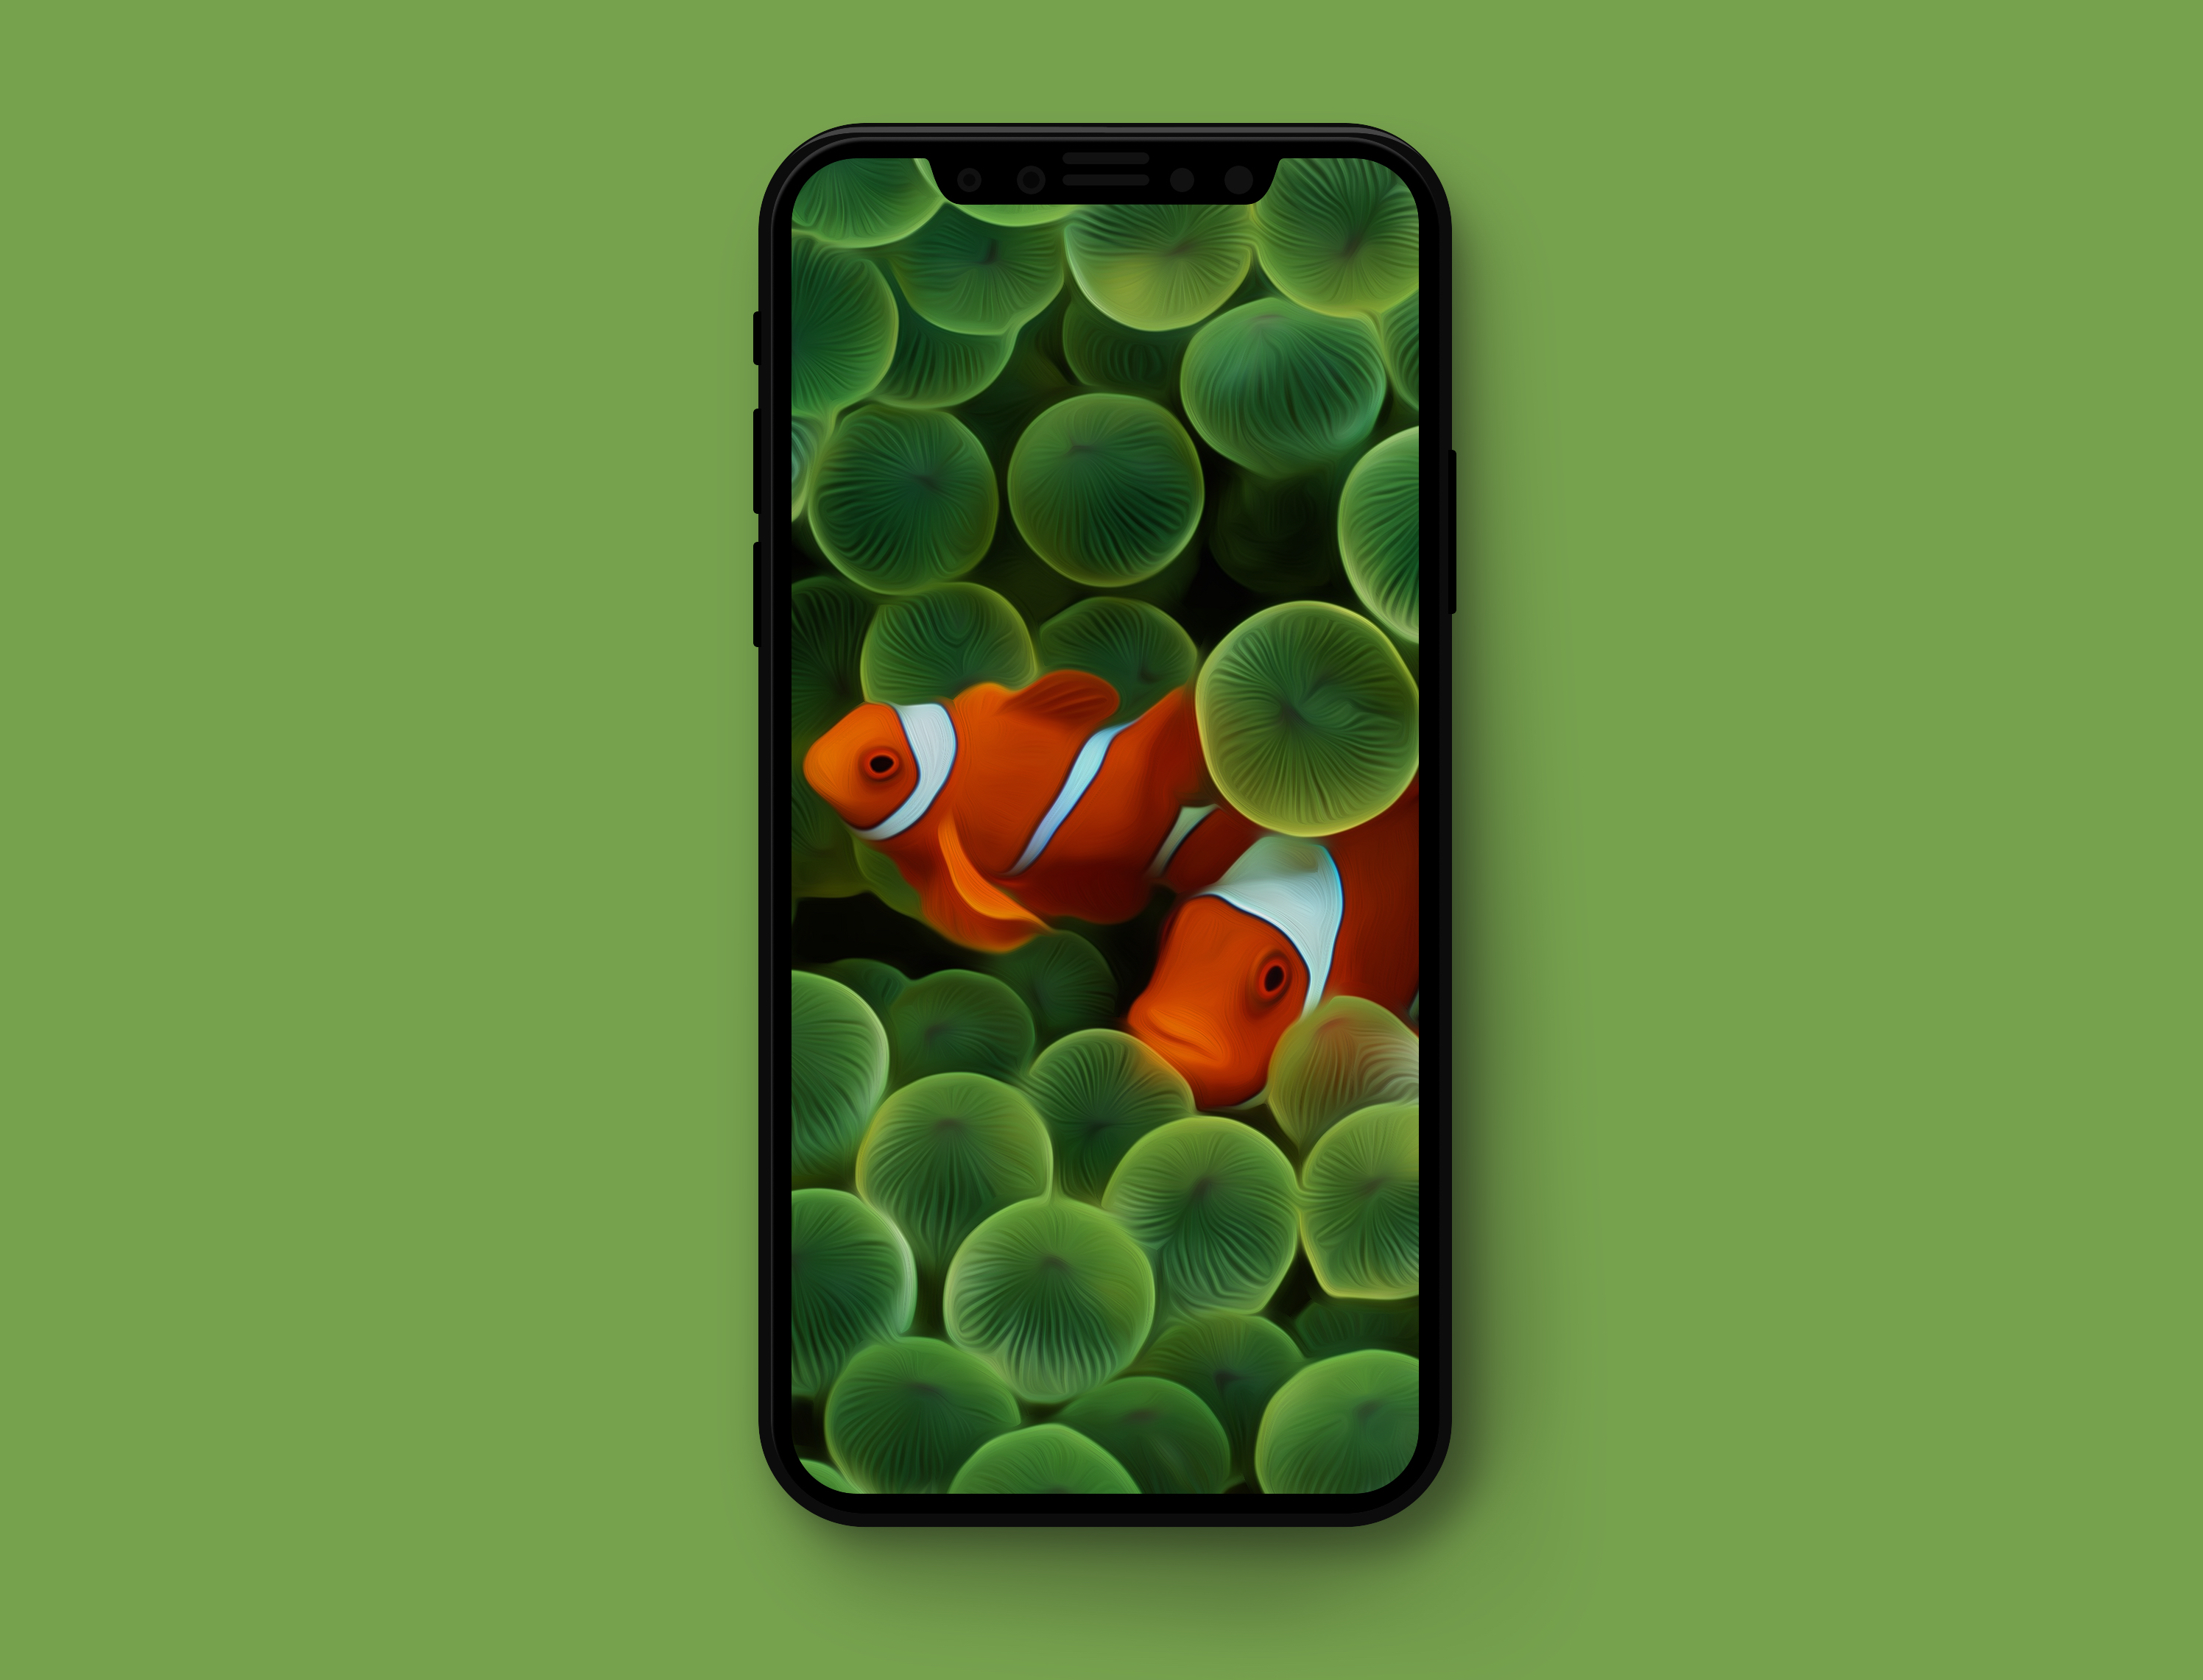 Iphone Wallpaper: Original Apple Wallpapers Optimized For IPhone X